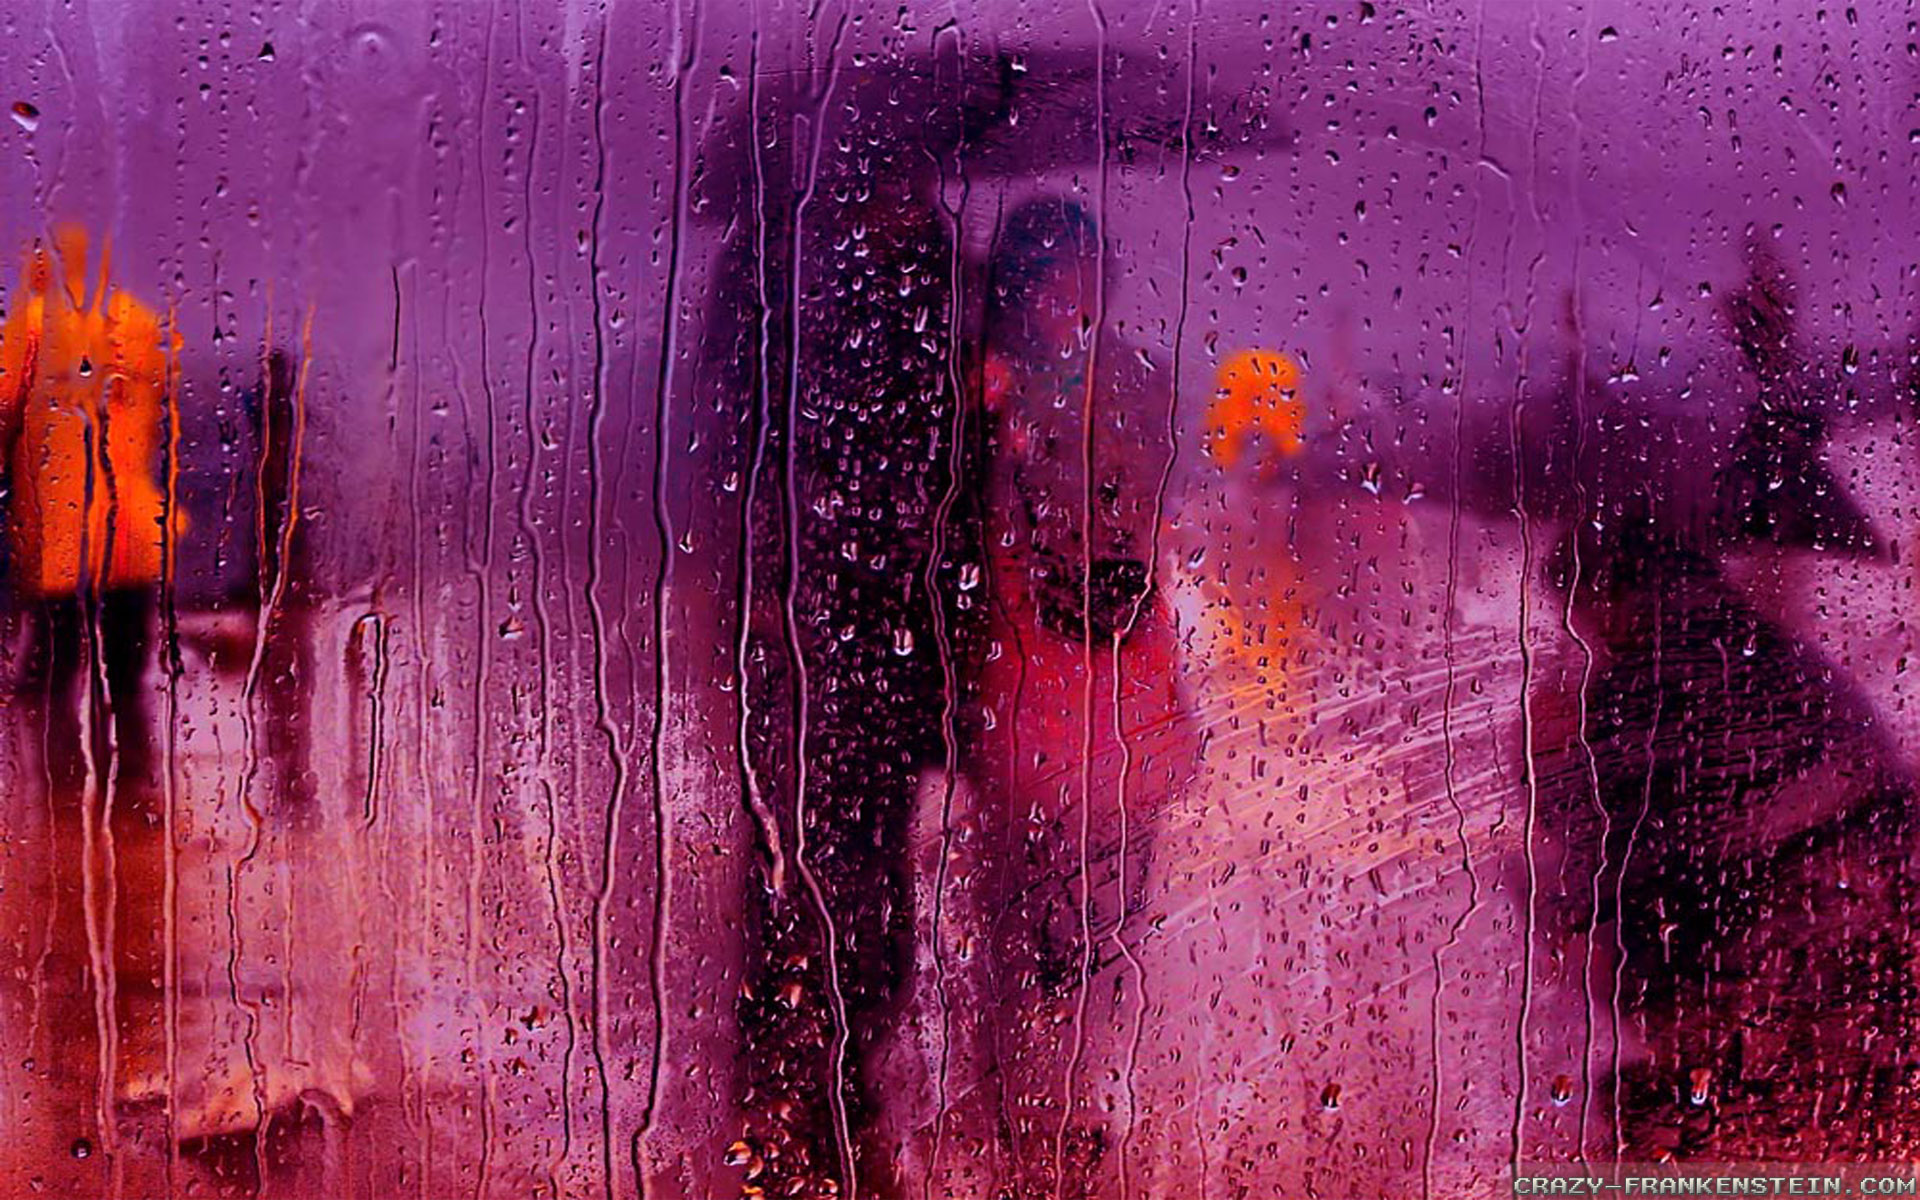 Romantic Kiss Wallpapers With Quotes Love Rain Wallpapers Crazy Frankenstein